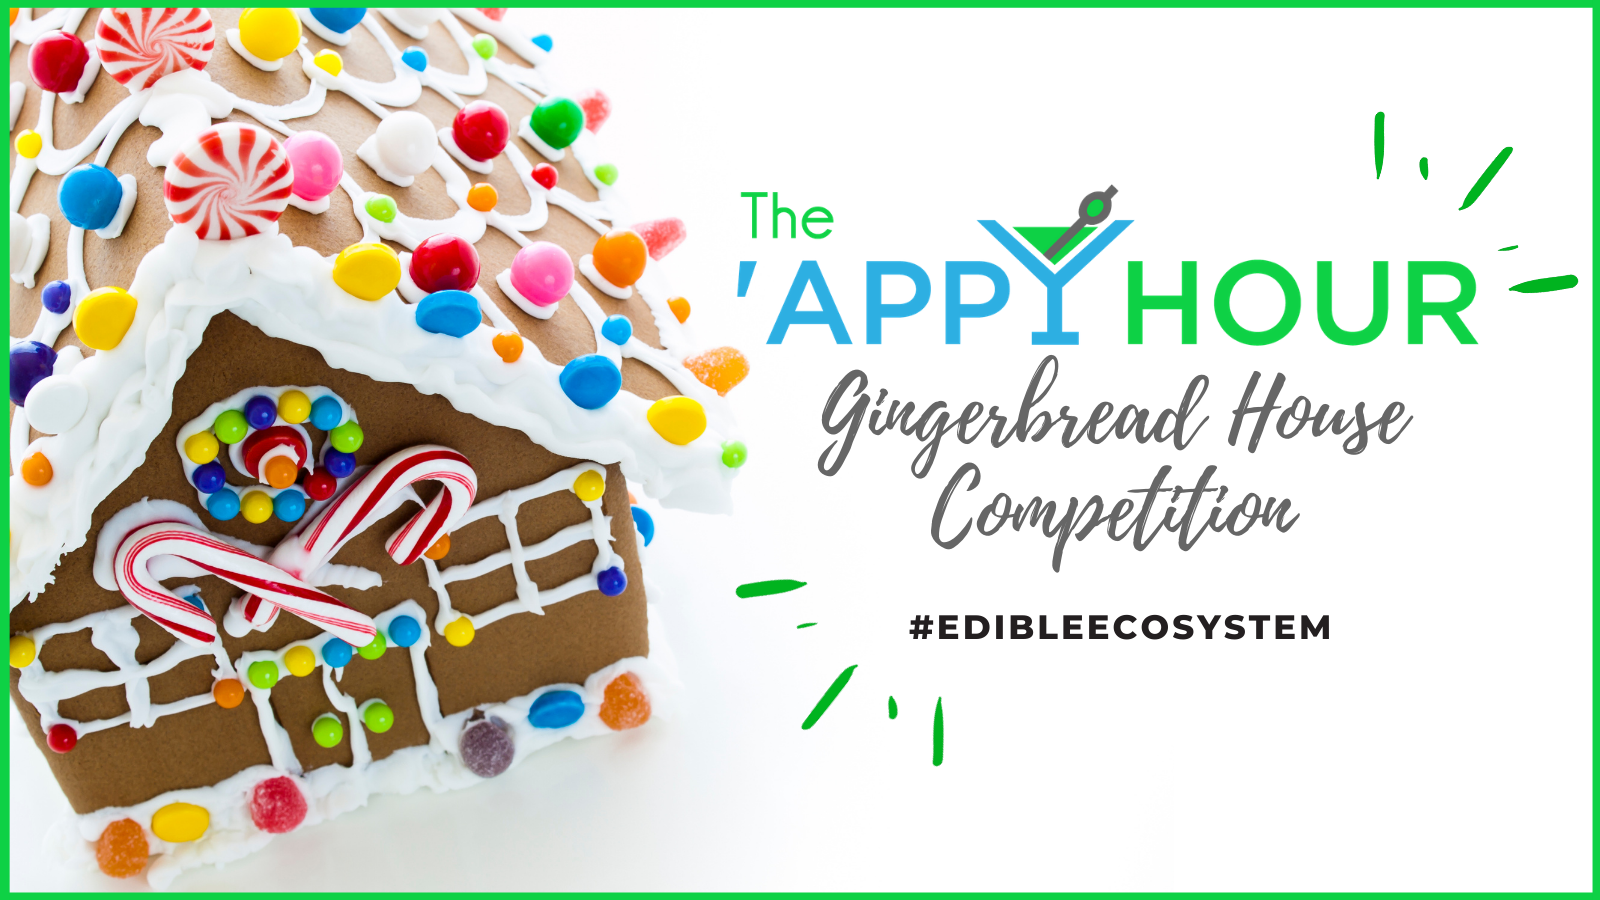 QB 'Appy Hour Gingerbread House Competition